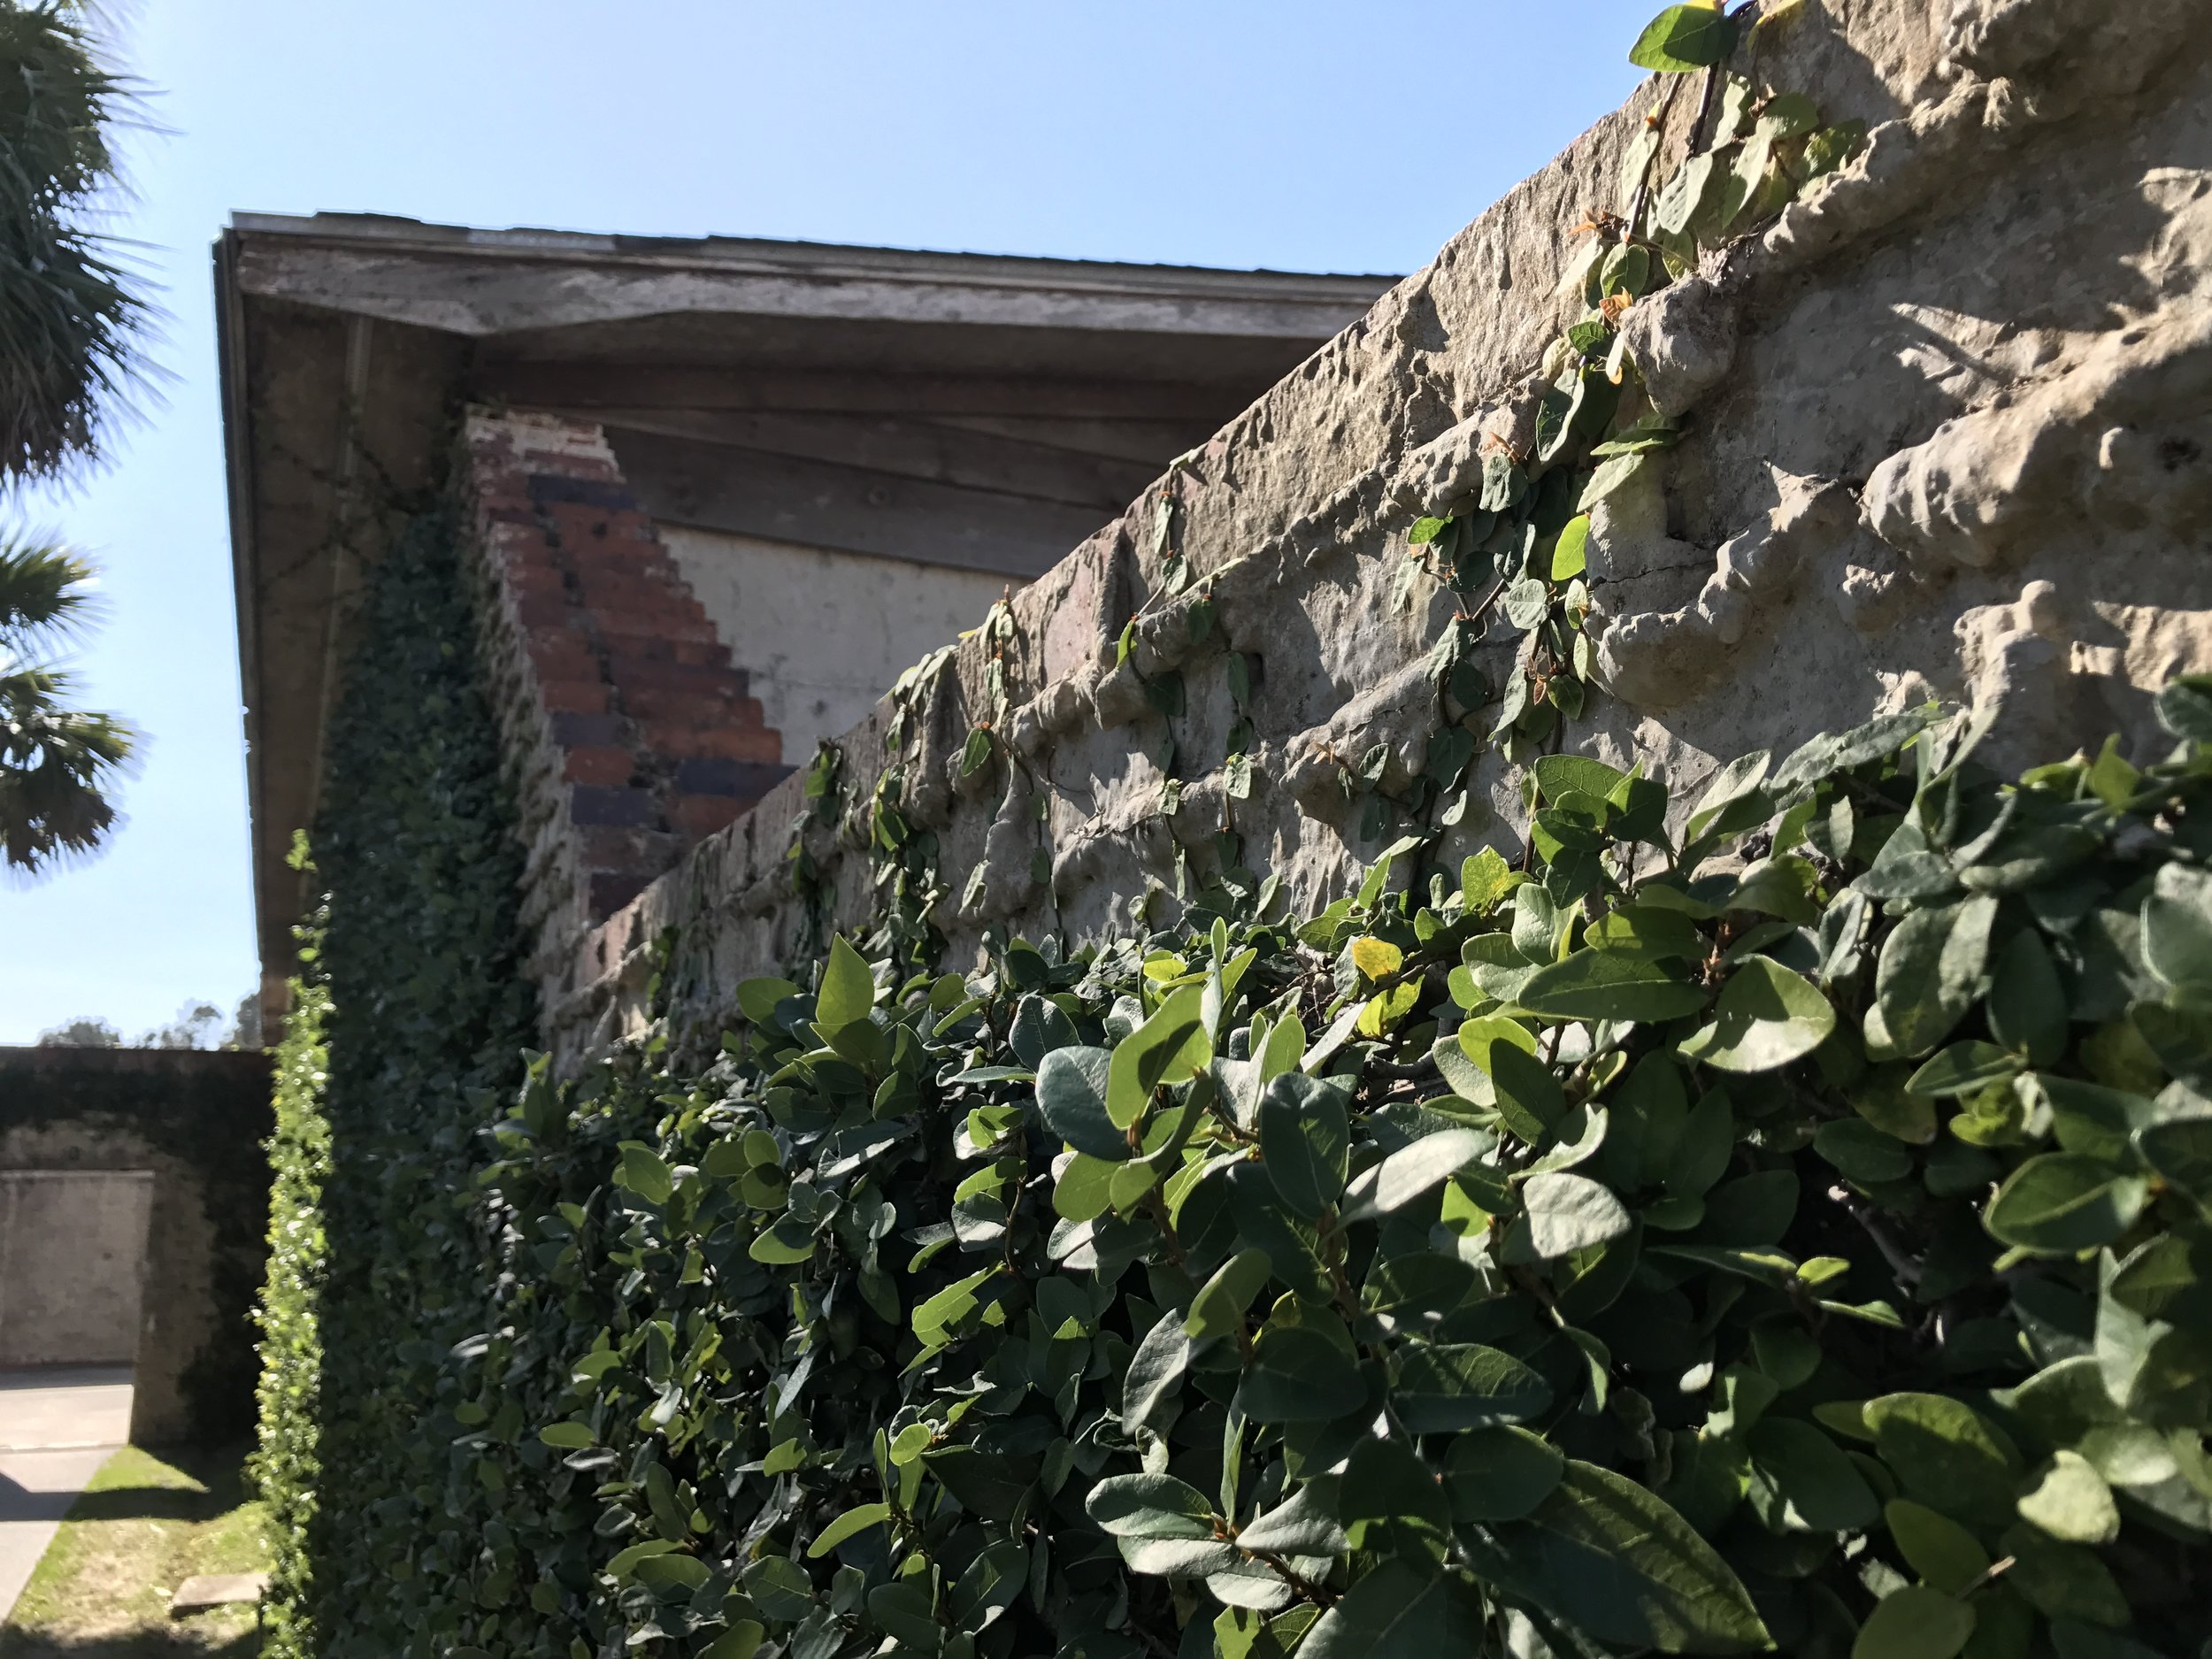 Outer wall of the stable